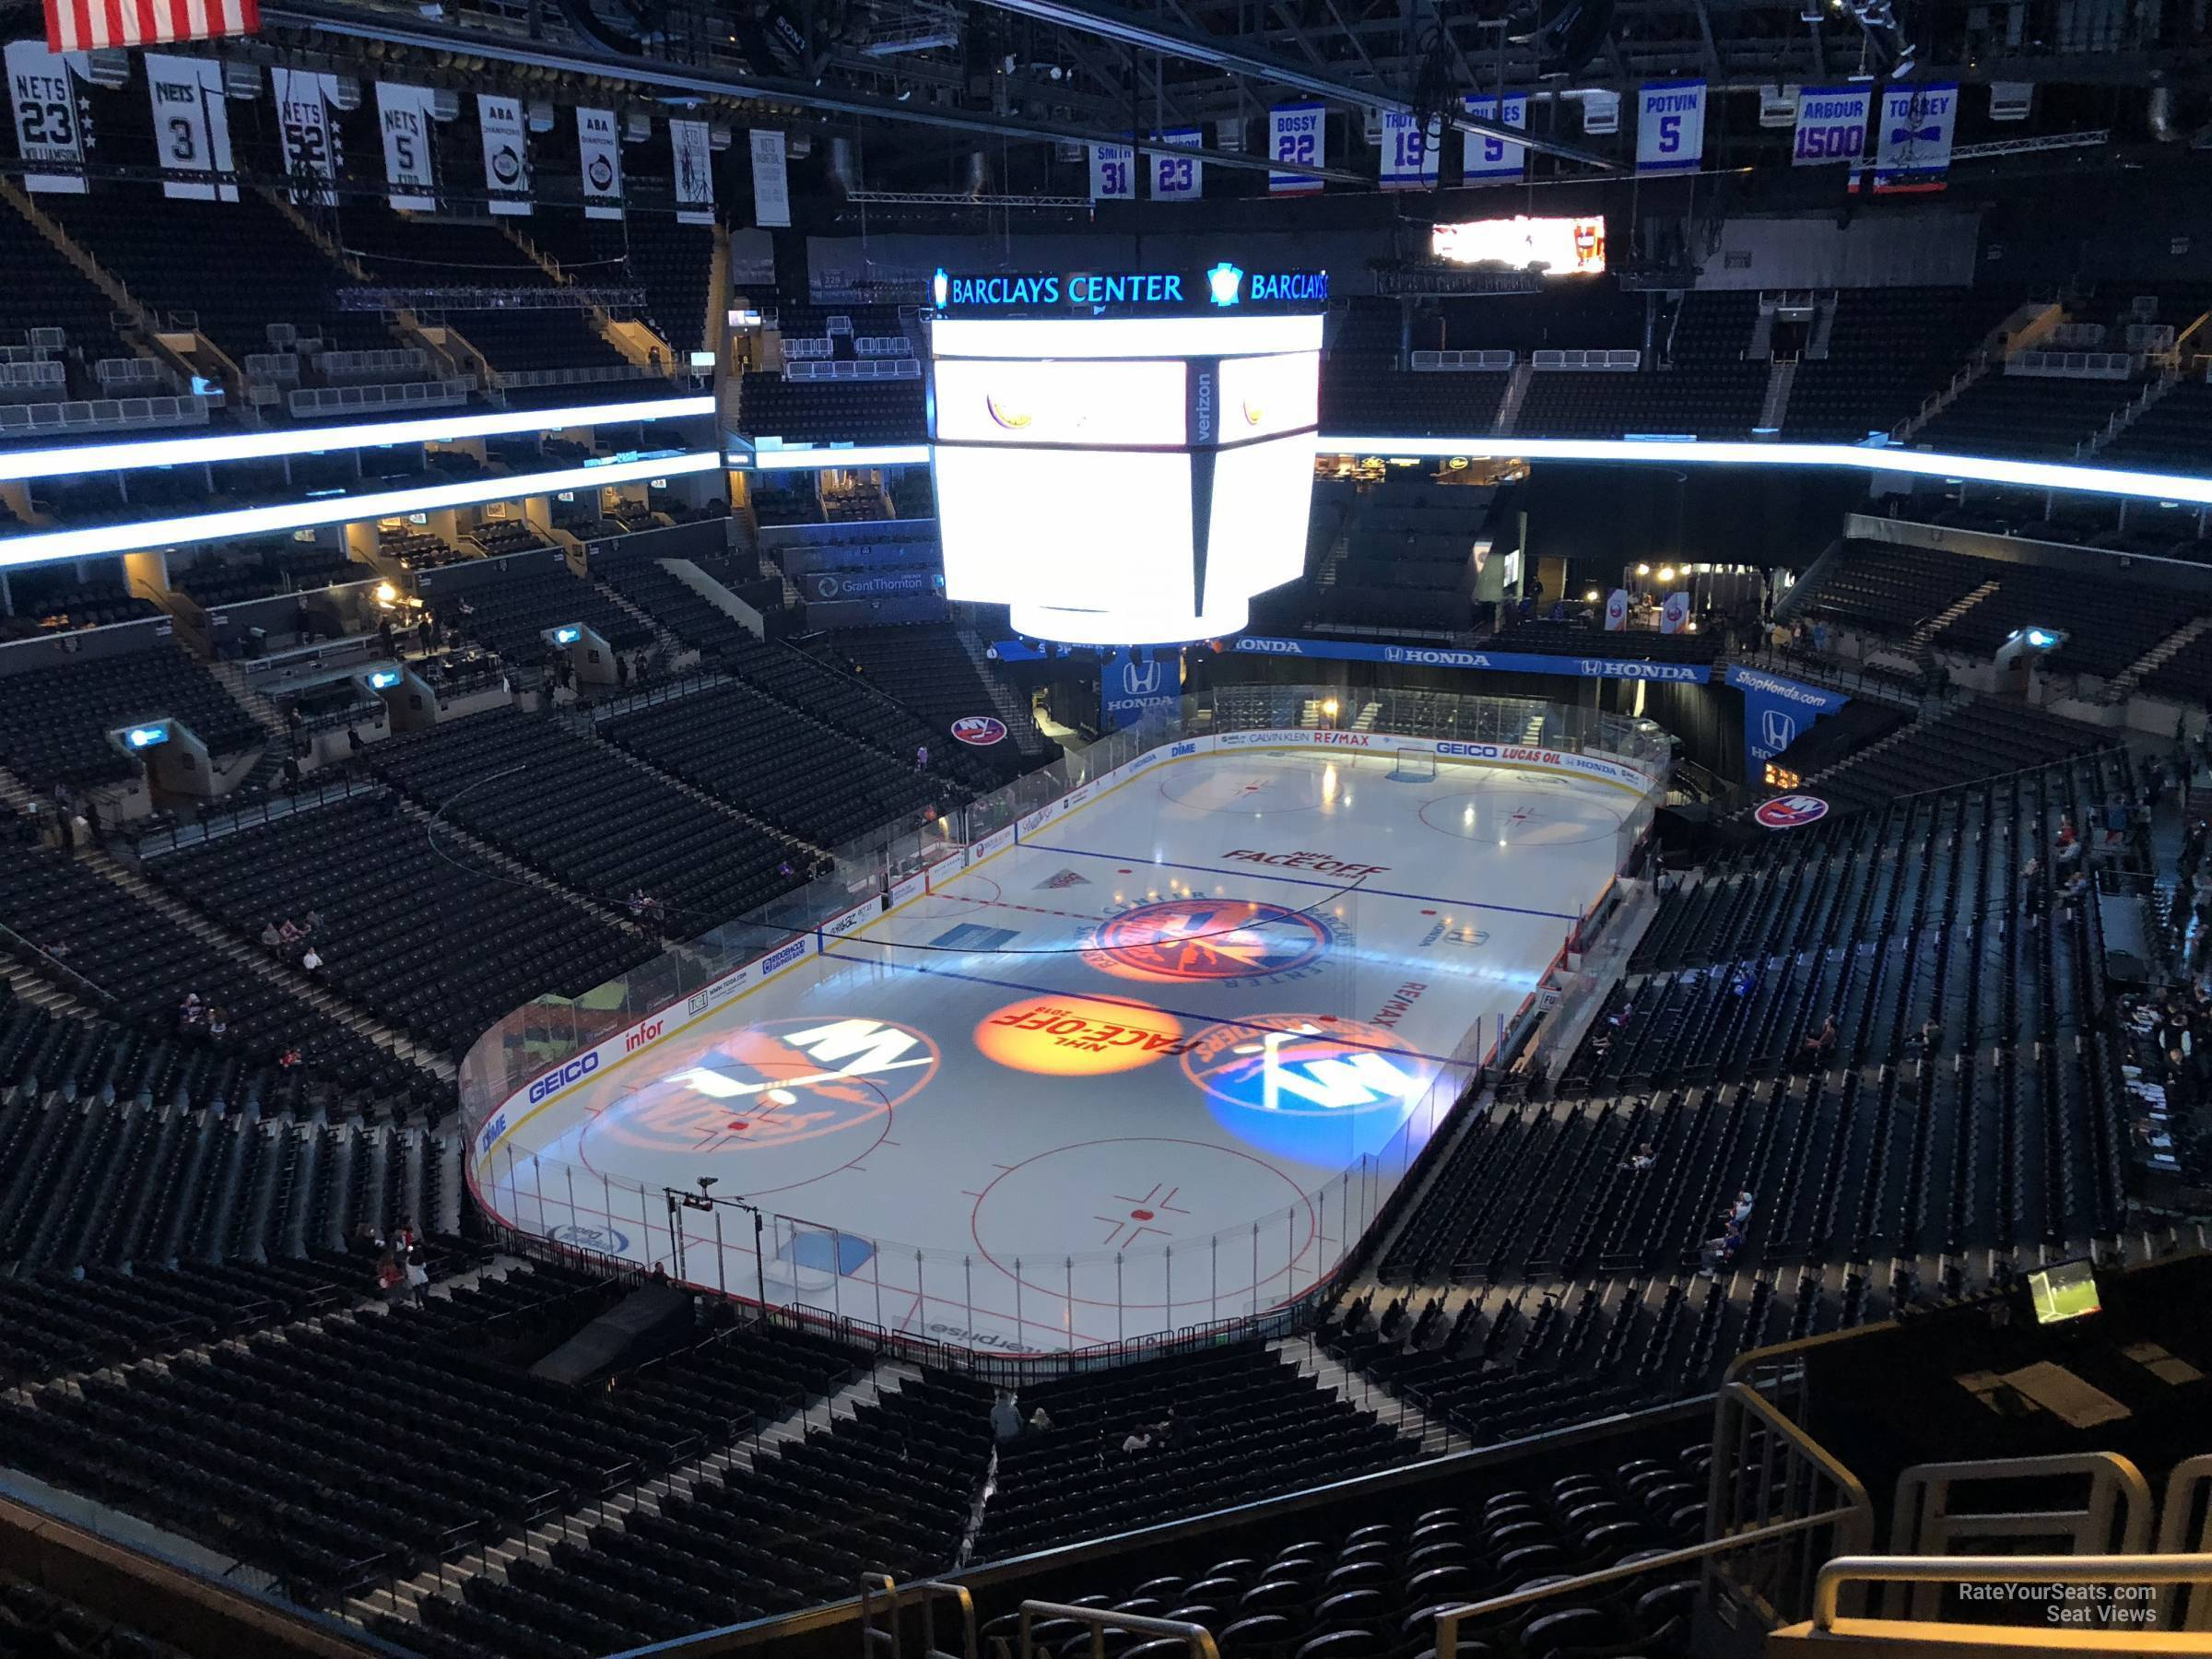 barclays center section 212 - new york islanders - rateyourseats